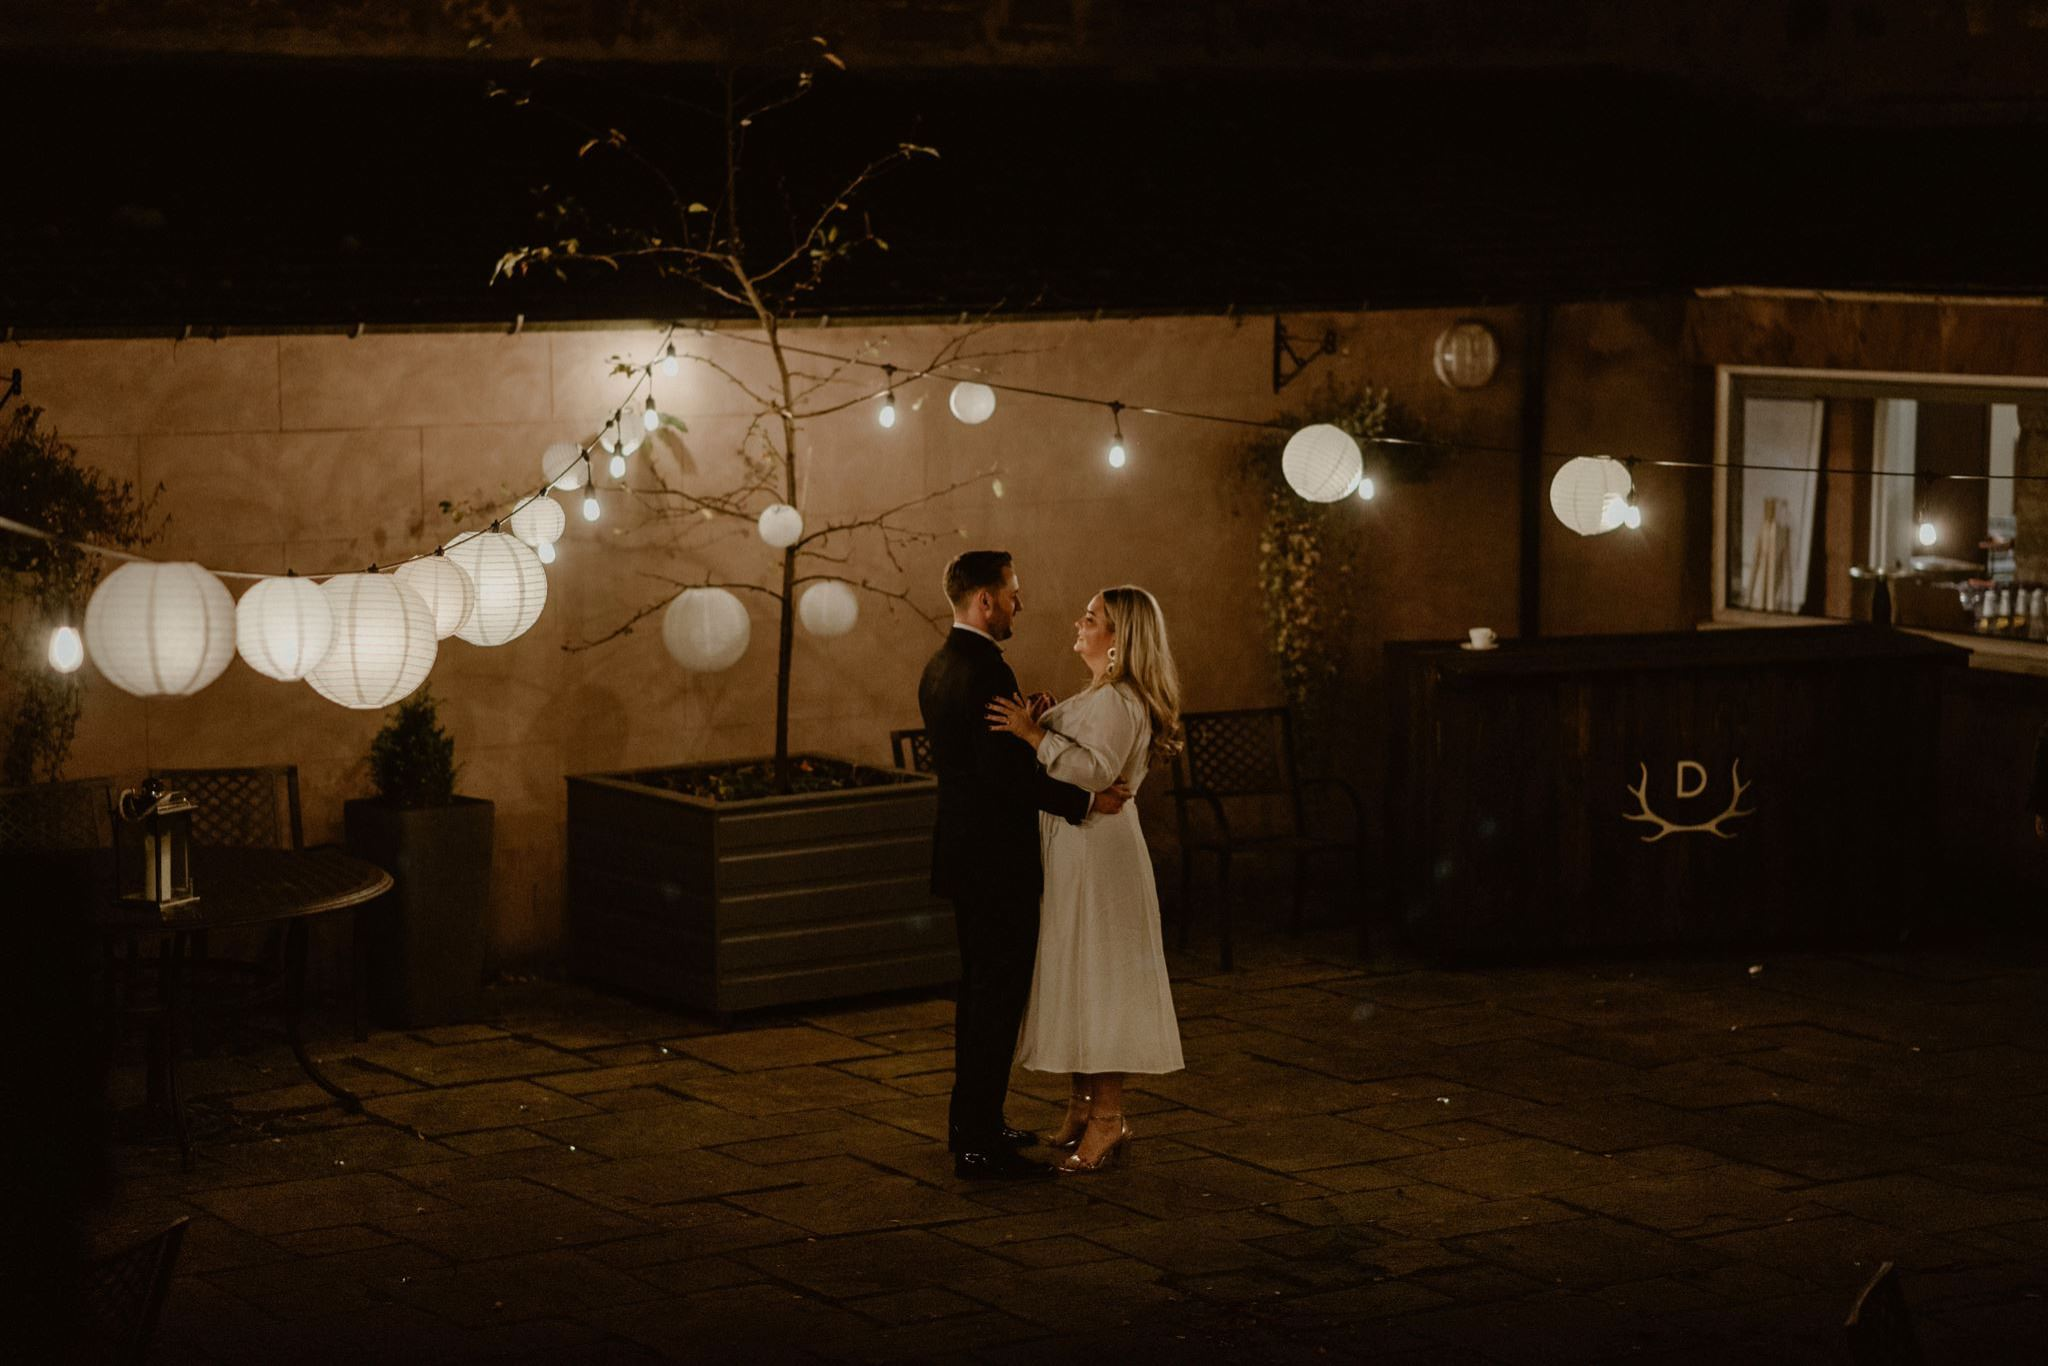 First dance under festoon lighting